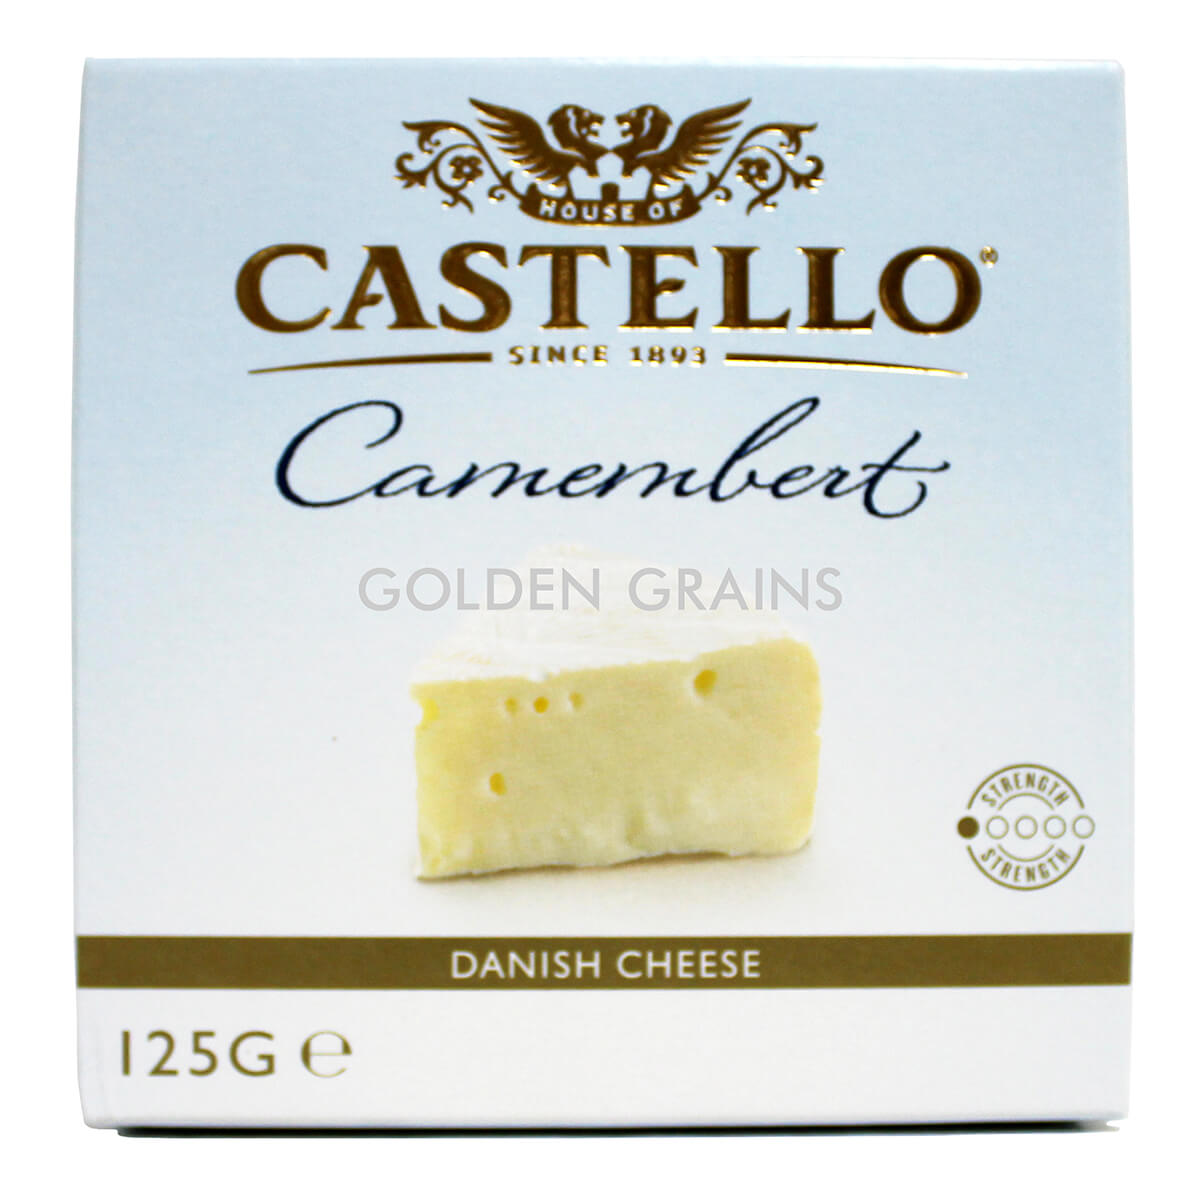 Castello Camembert